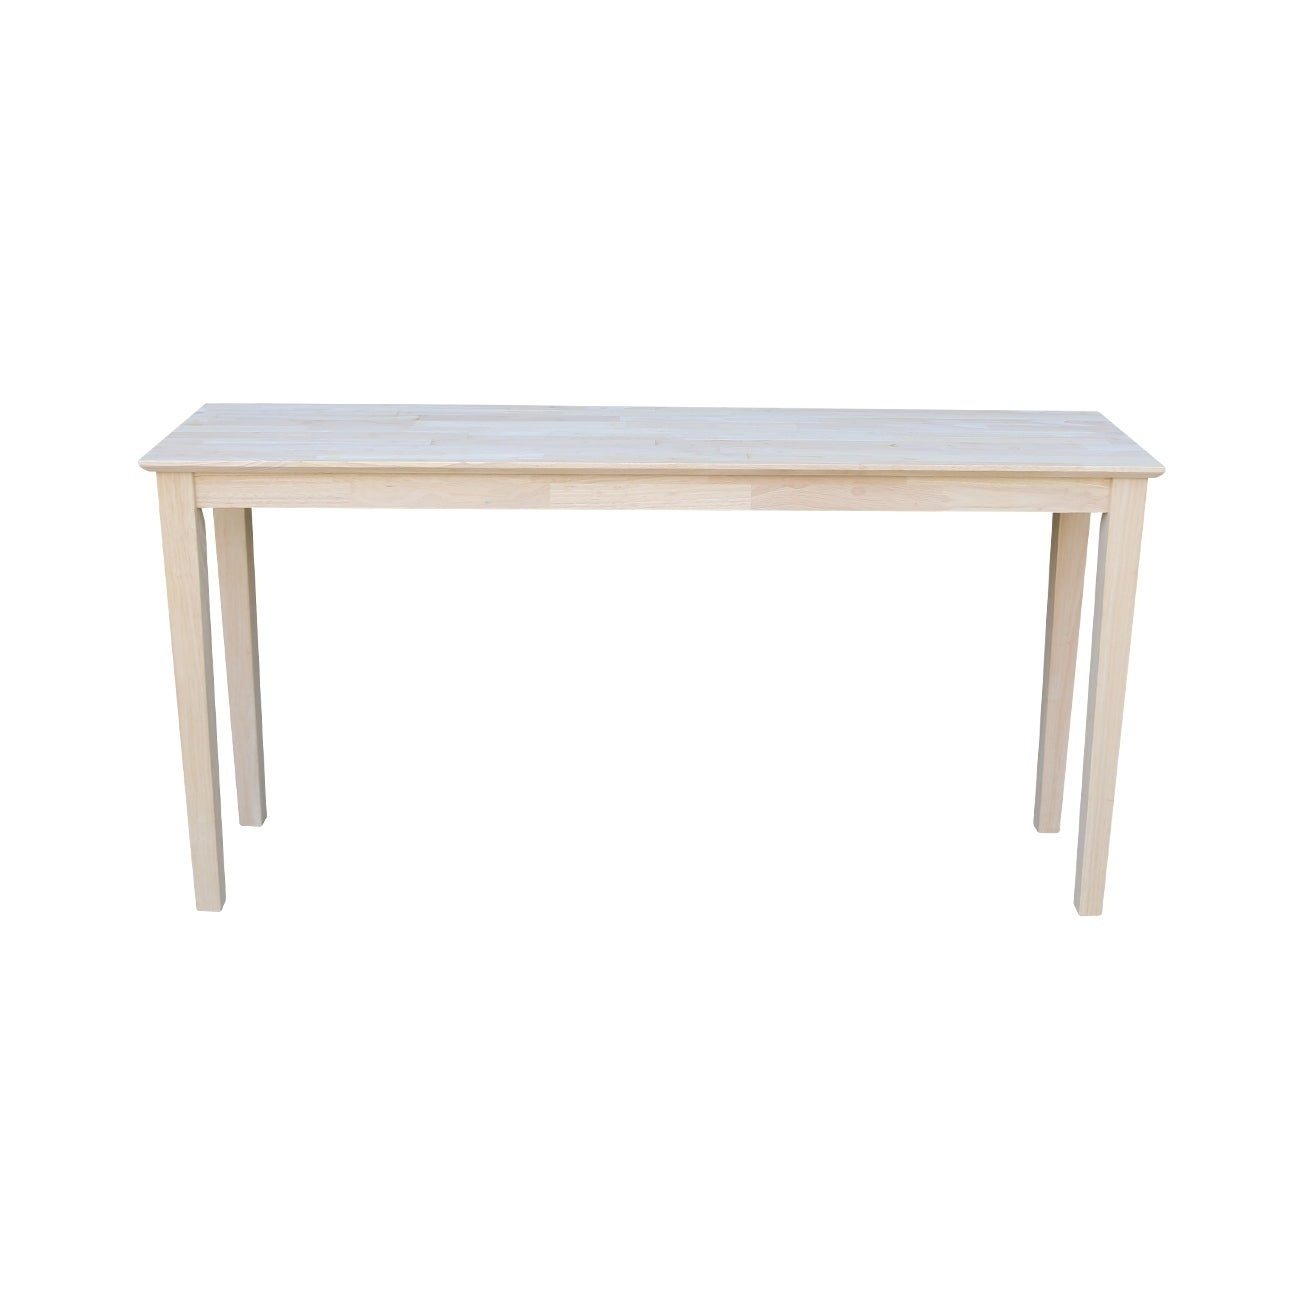 new style a83ae e9f81 Unfinished Shaker Extended Length Console Table